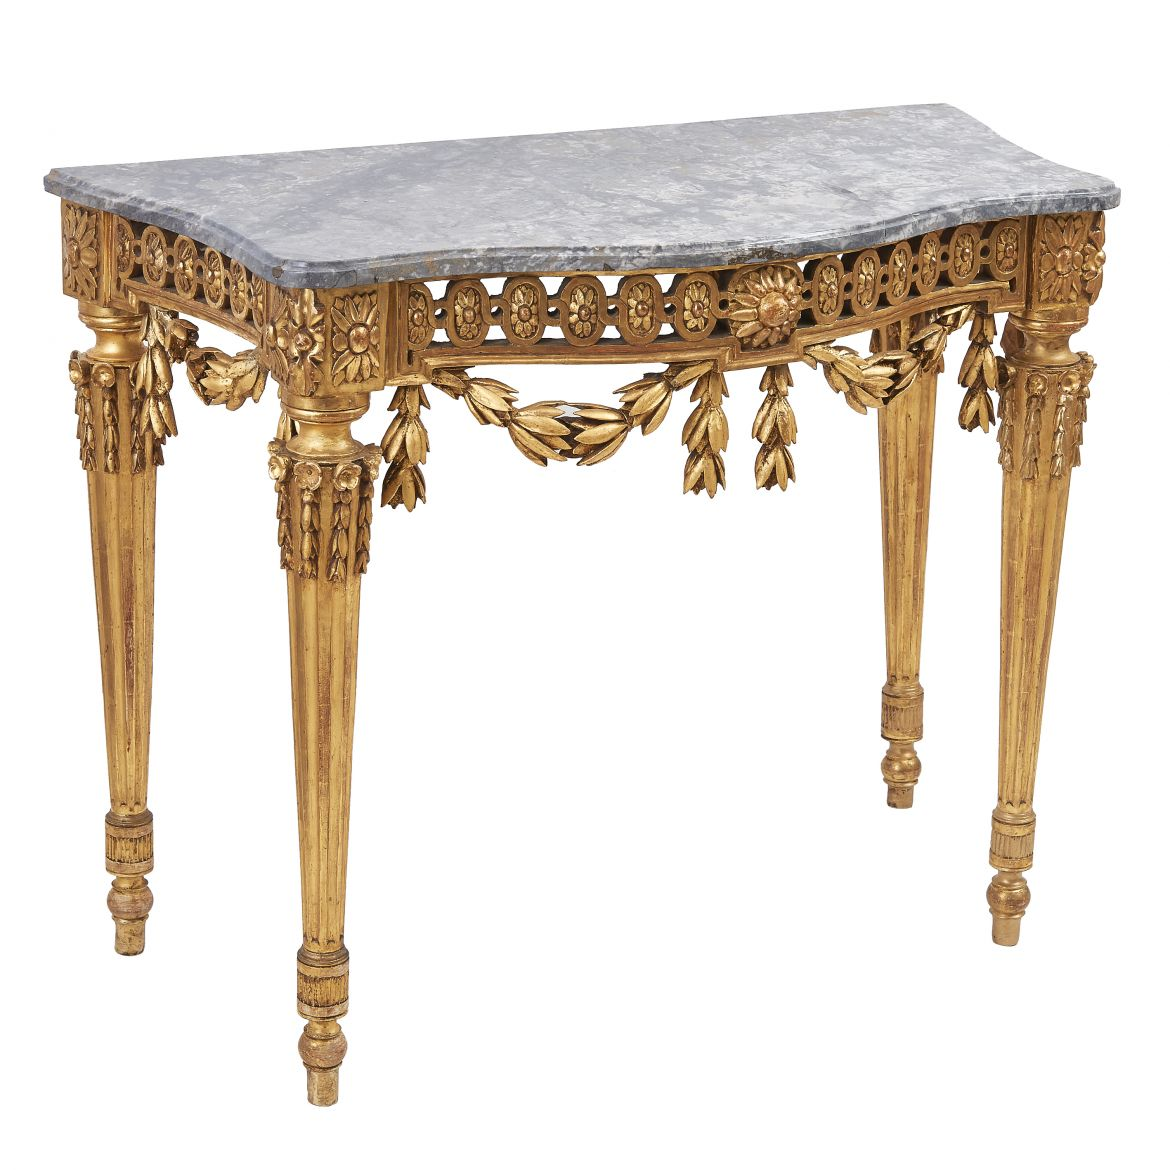 Italian Neoclassical Giltwood Console